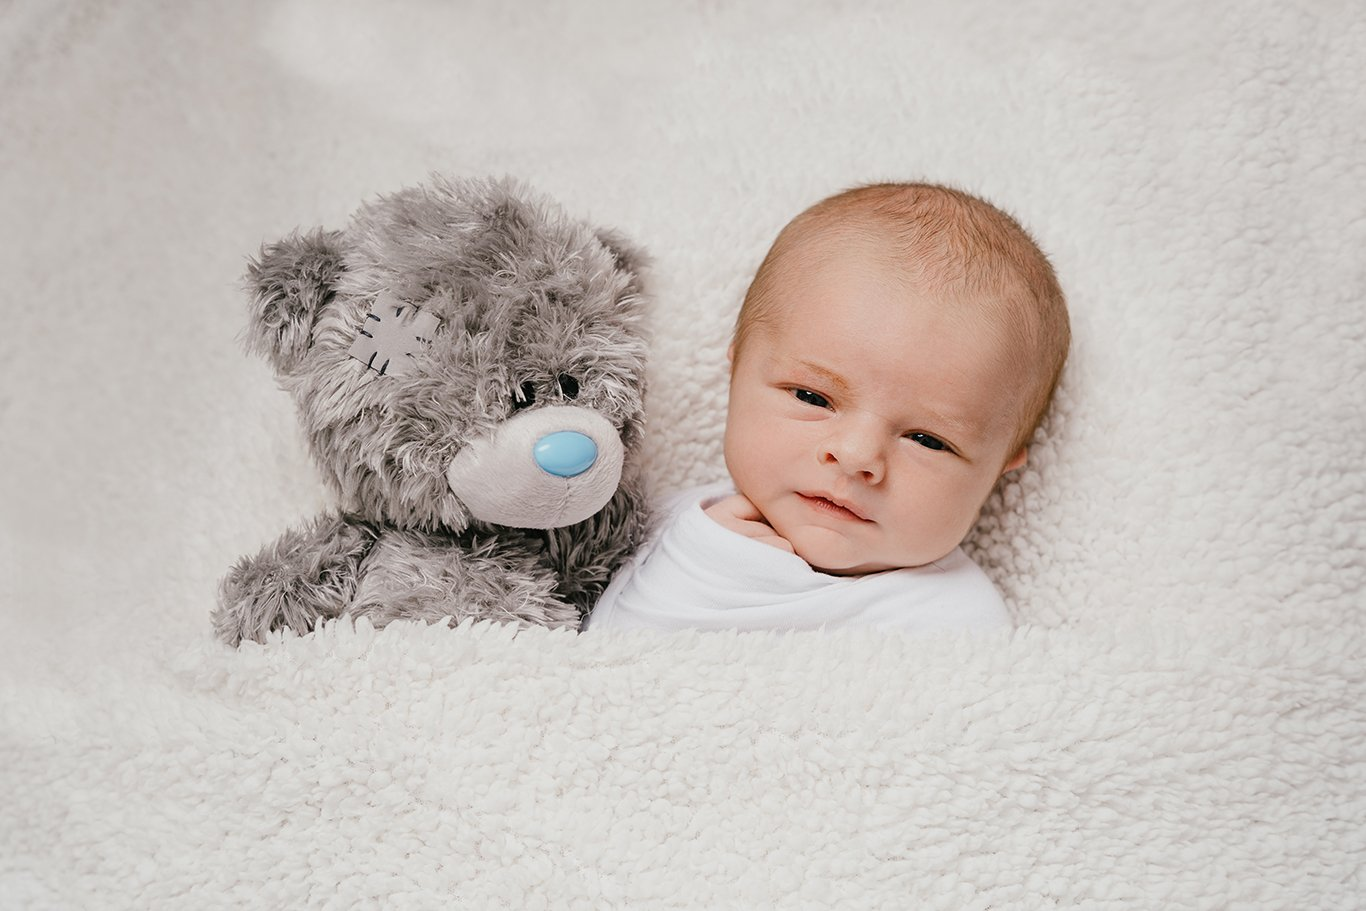 Newborn baby and Teddy